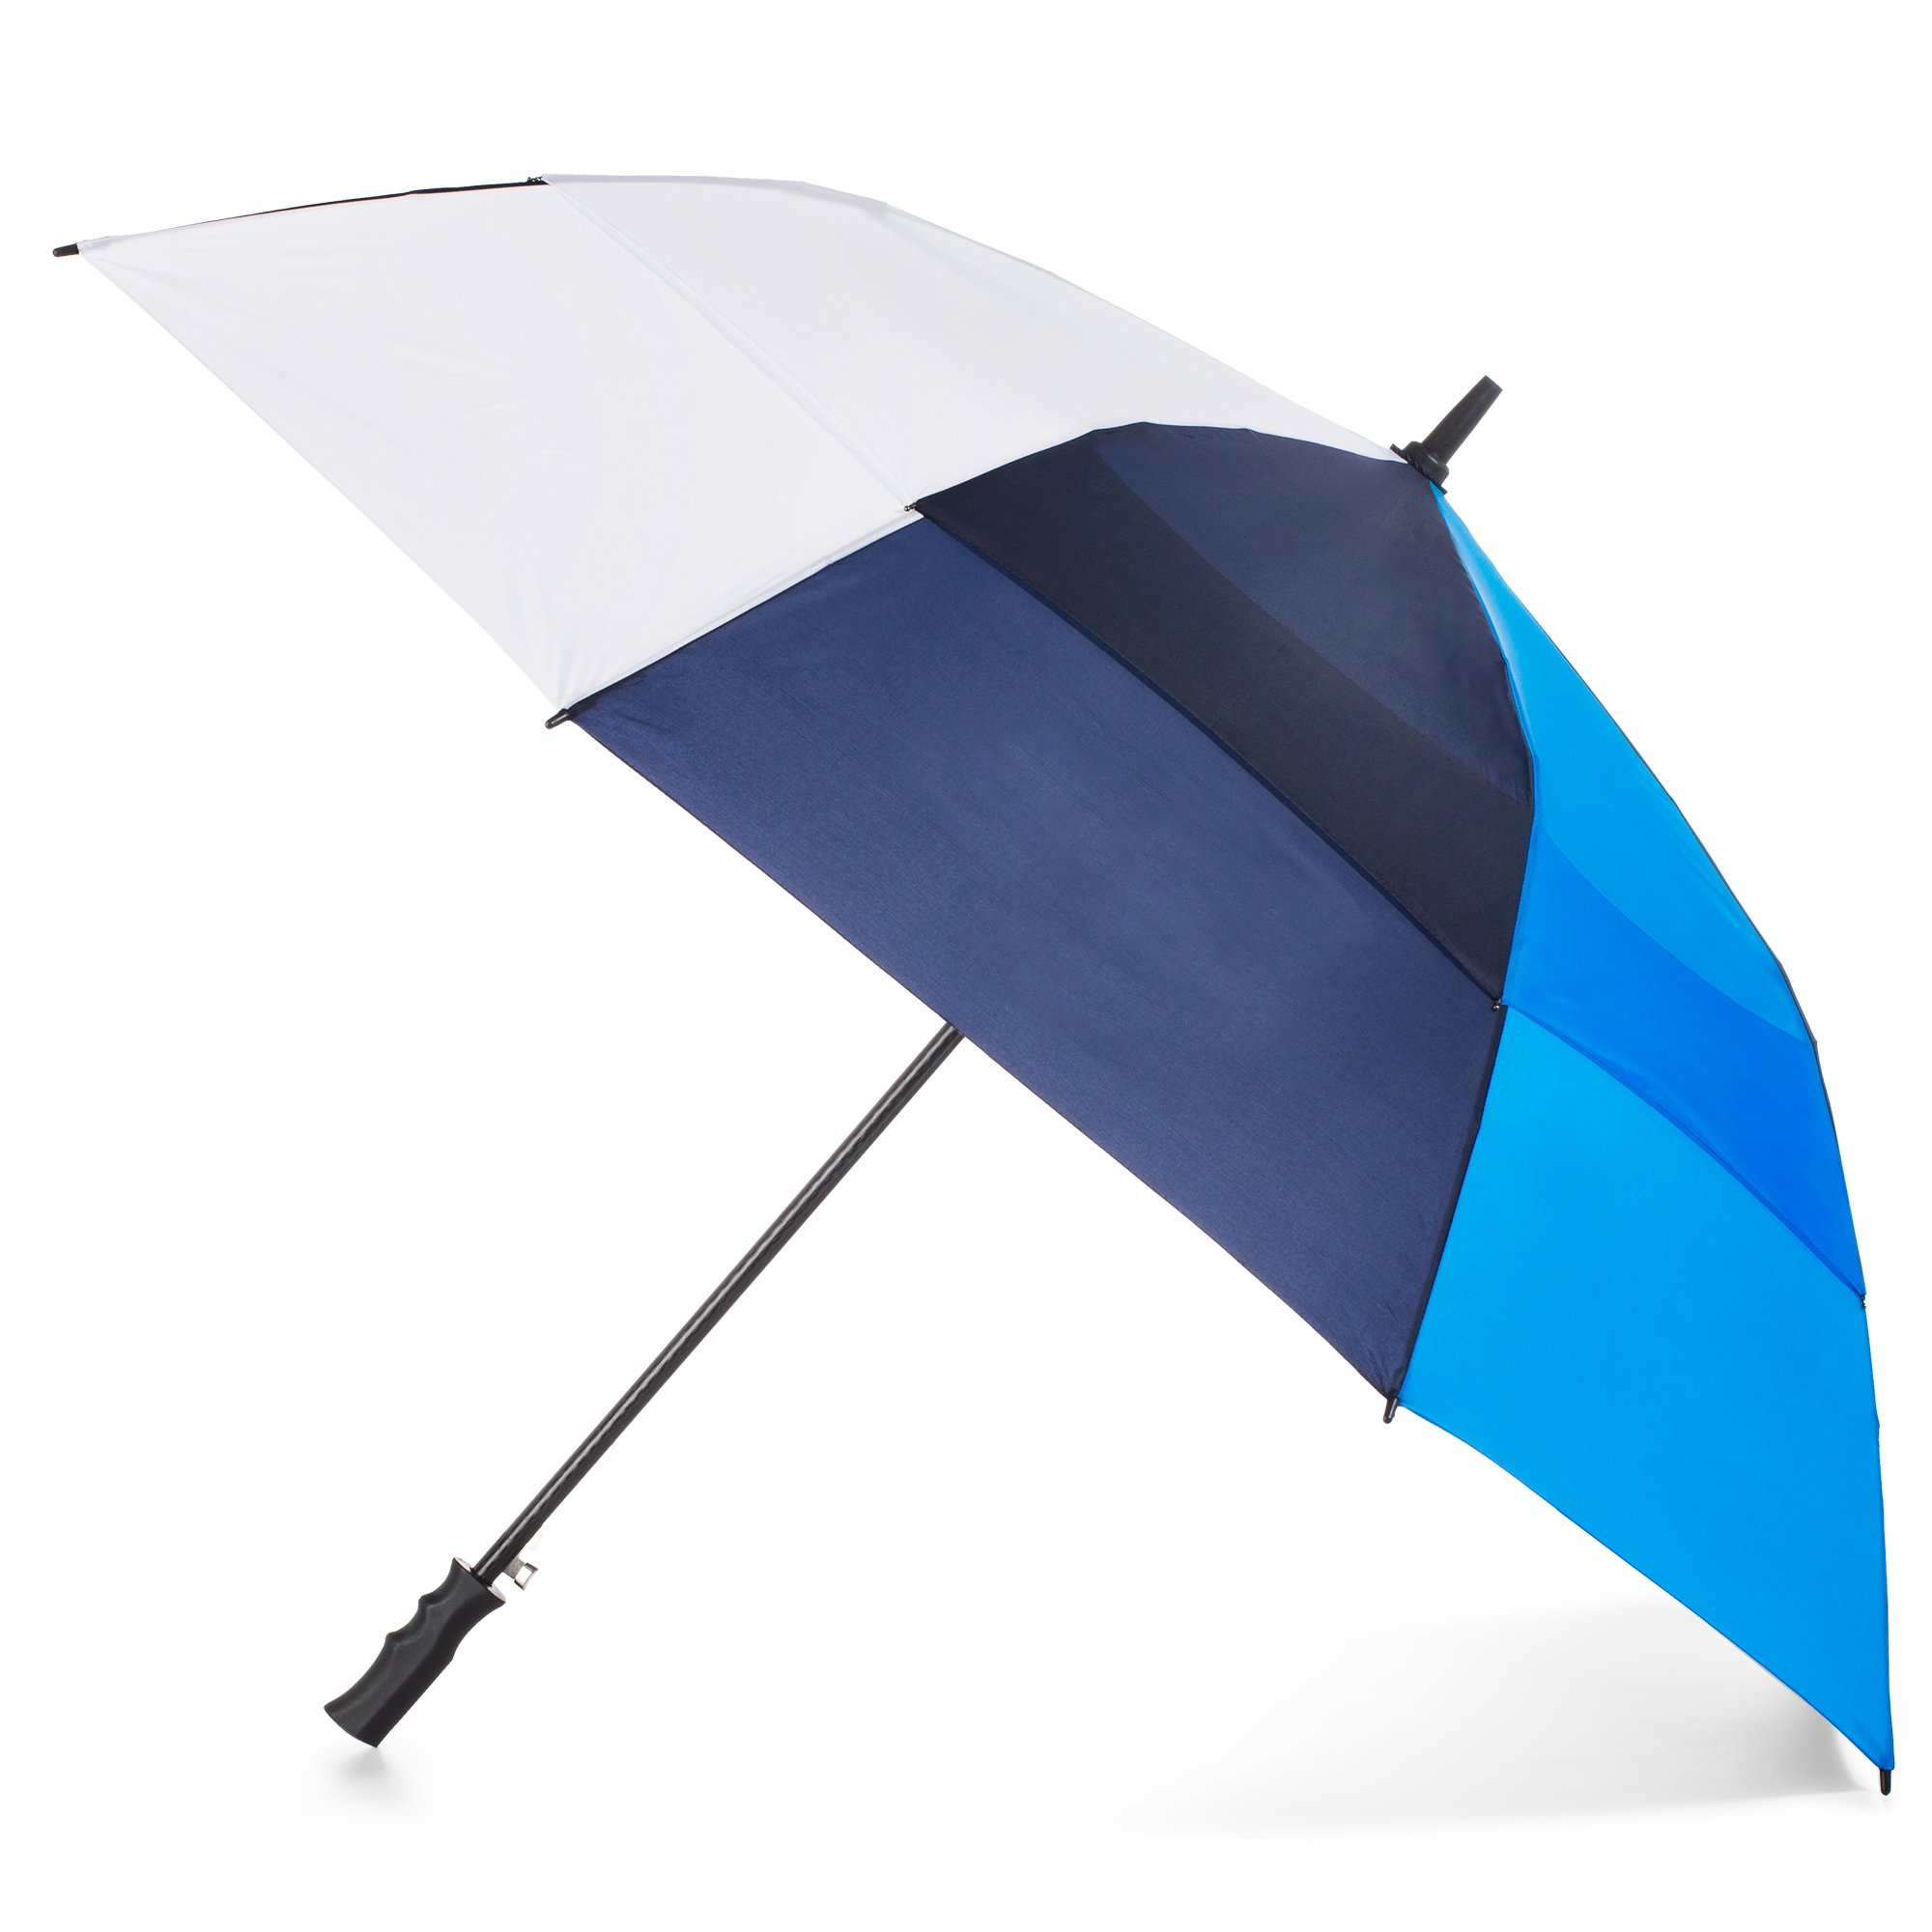 Totes Automatic Open Windproof and Water-Resistant Golf Umbrella, Navy, White, Blue